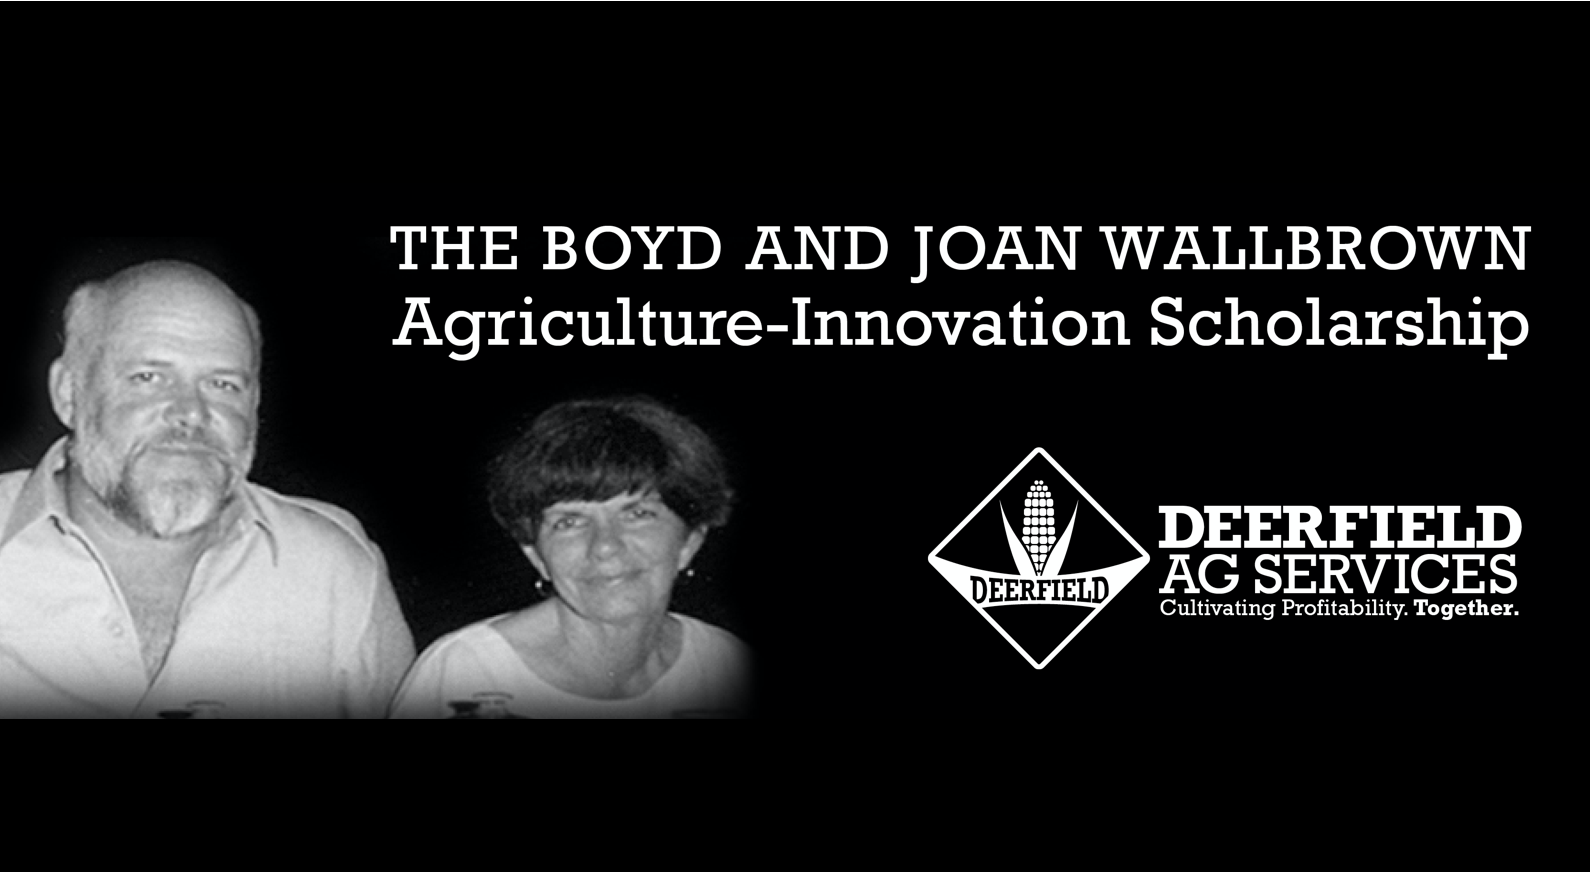 The Boyd and Joan Wallbrown Agriculture-Innovation Scholarship Application Deadline is March 31